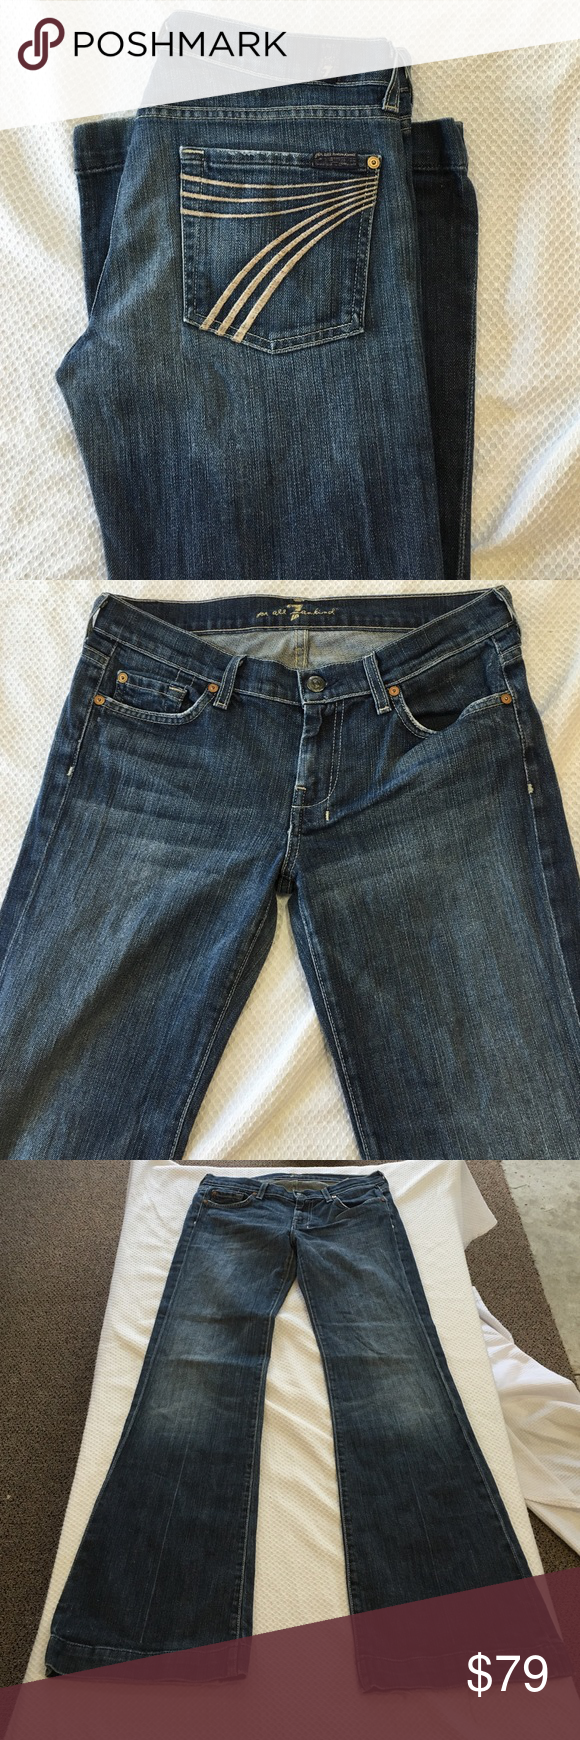 """7FAM DOJO JEANS!! Great condition, just a tad bit of wear on the BACKS of the BOTTOMS, not even a flaw! These have pale pink """"7's"""" on the back pockets! Come get them cowgirls and livestock showers!! Size 28. Inseam 32 7 for all Mankind Jeans Flare & Wide Leg"""